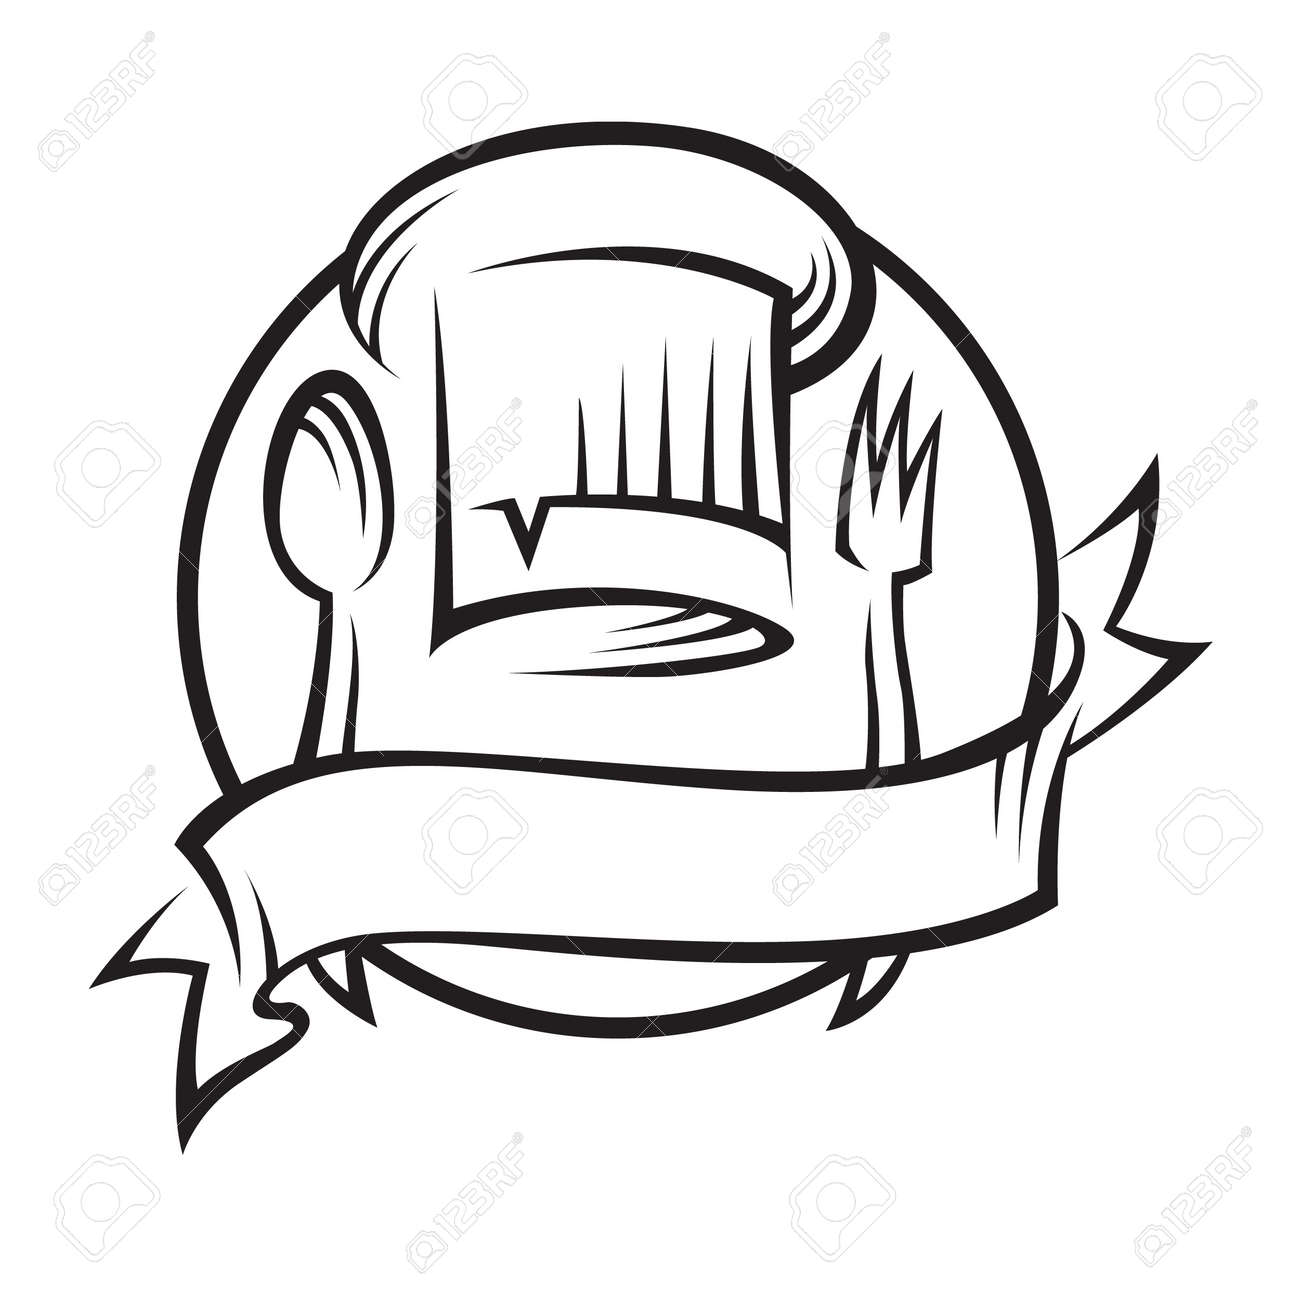 hight resolution of chef hat with spoon and fork stock vector 11650415